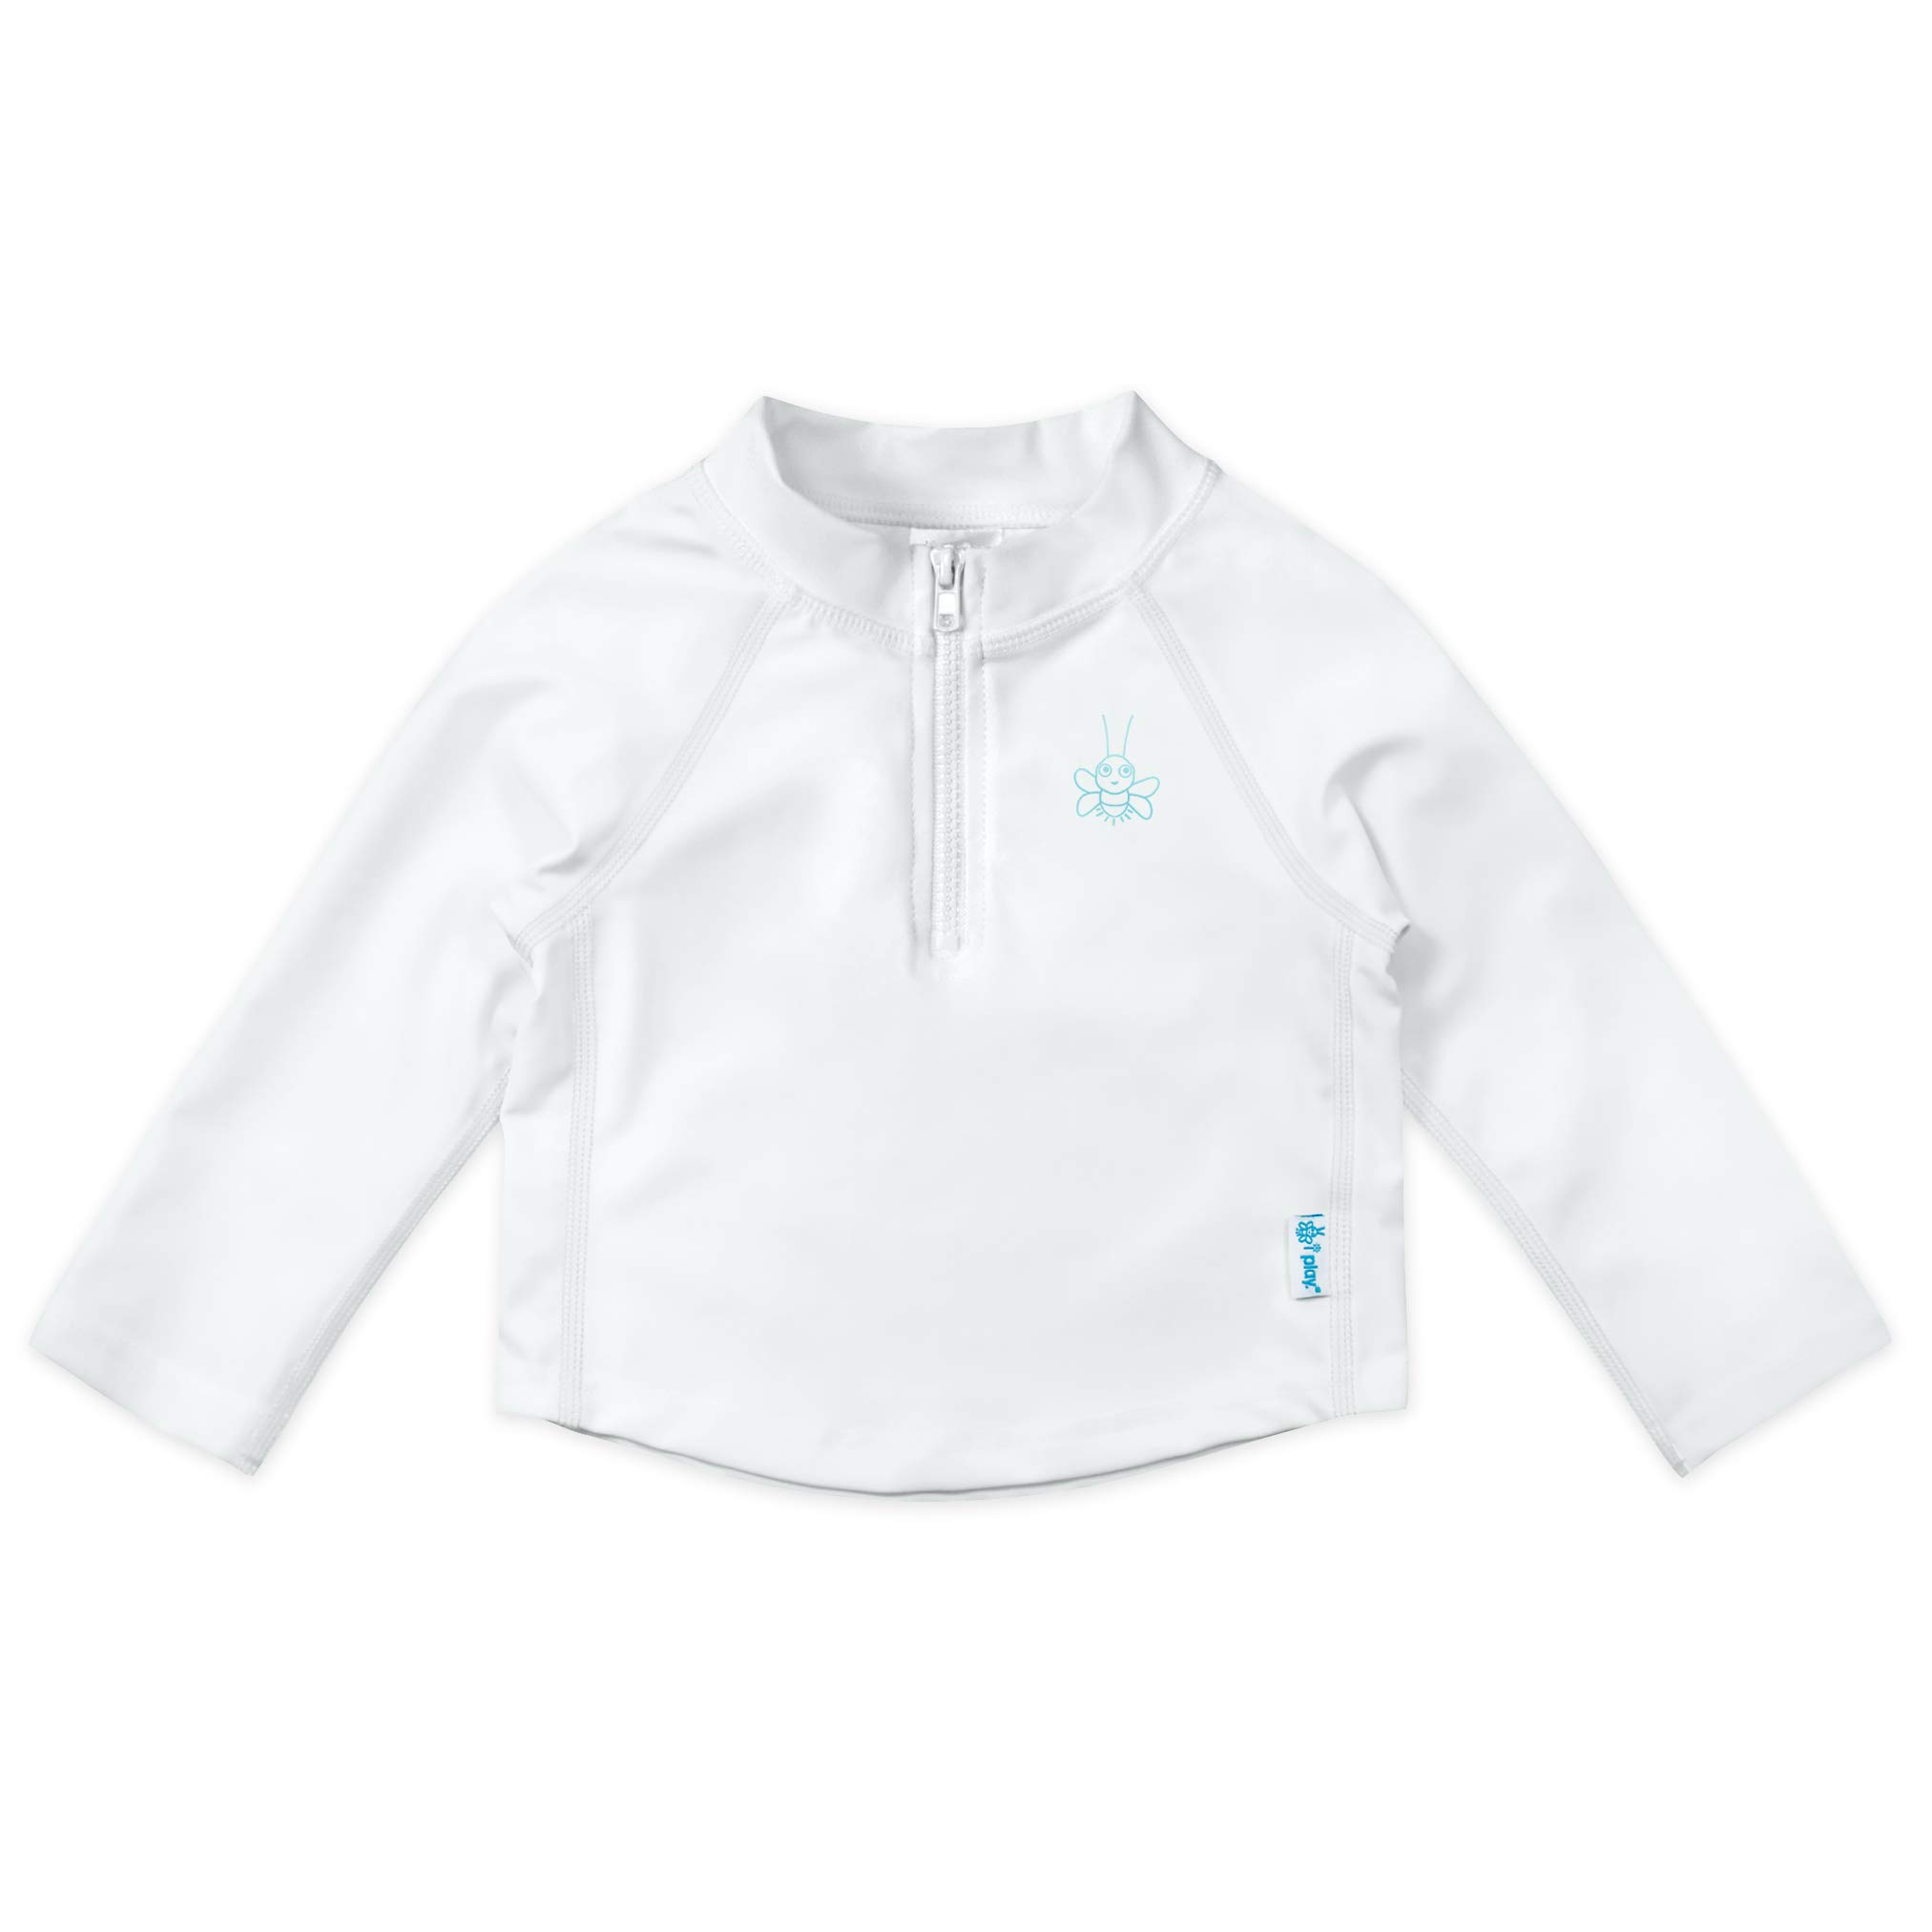 i play. Long Sleeve Rashguard Shirt | All-day UPF 50+ sun protection—wet or dry,White Zip,24 months